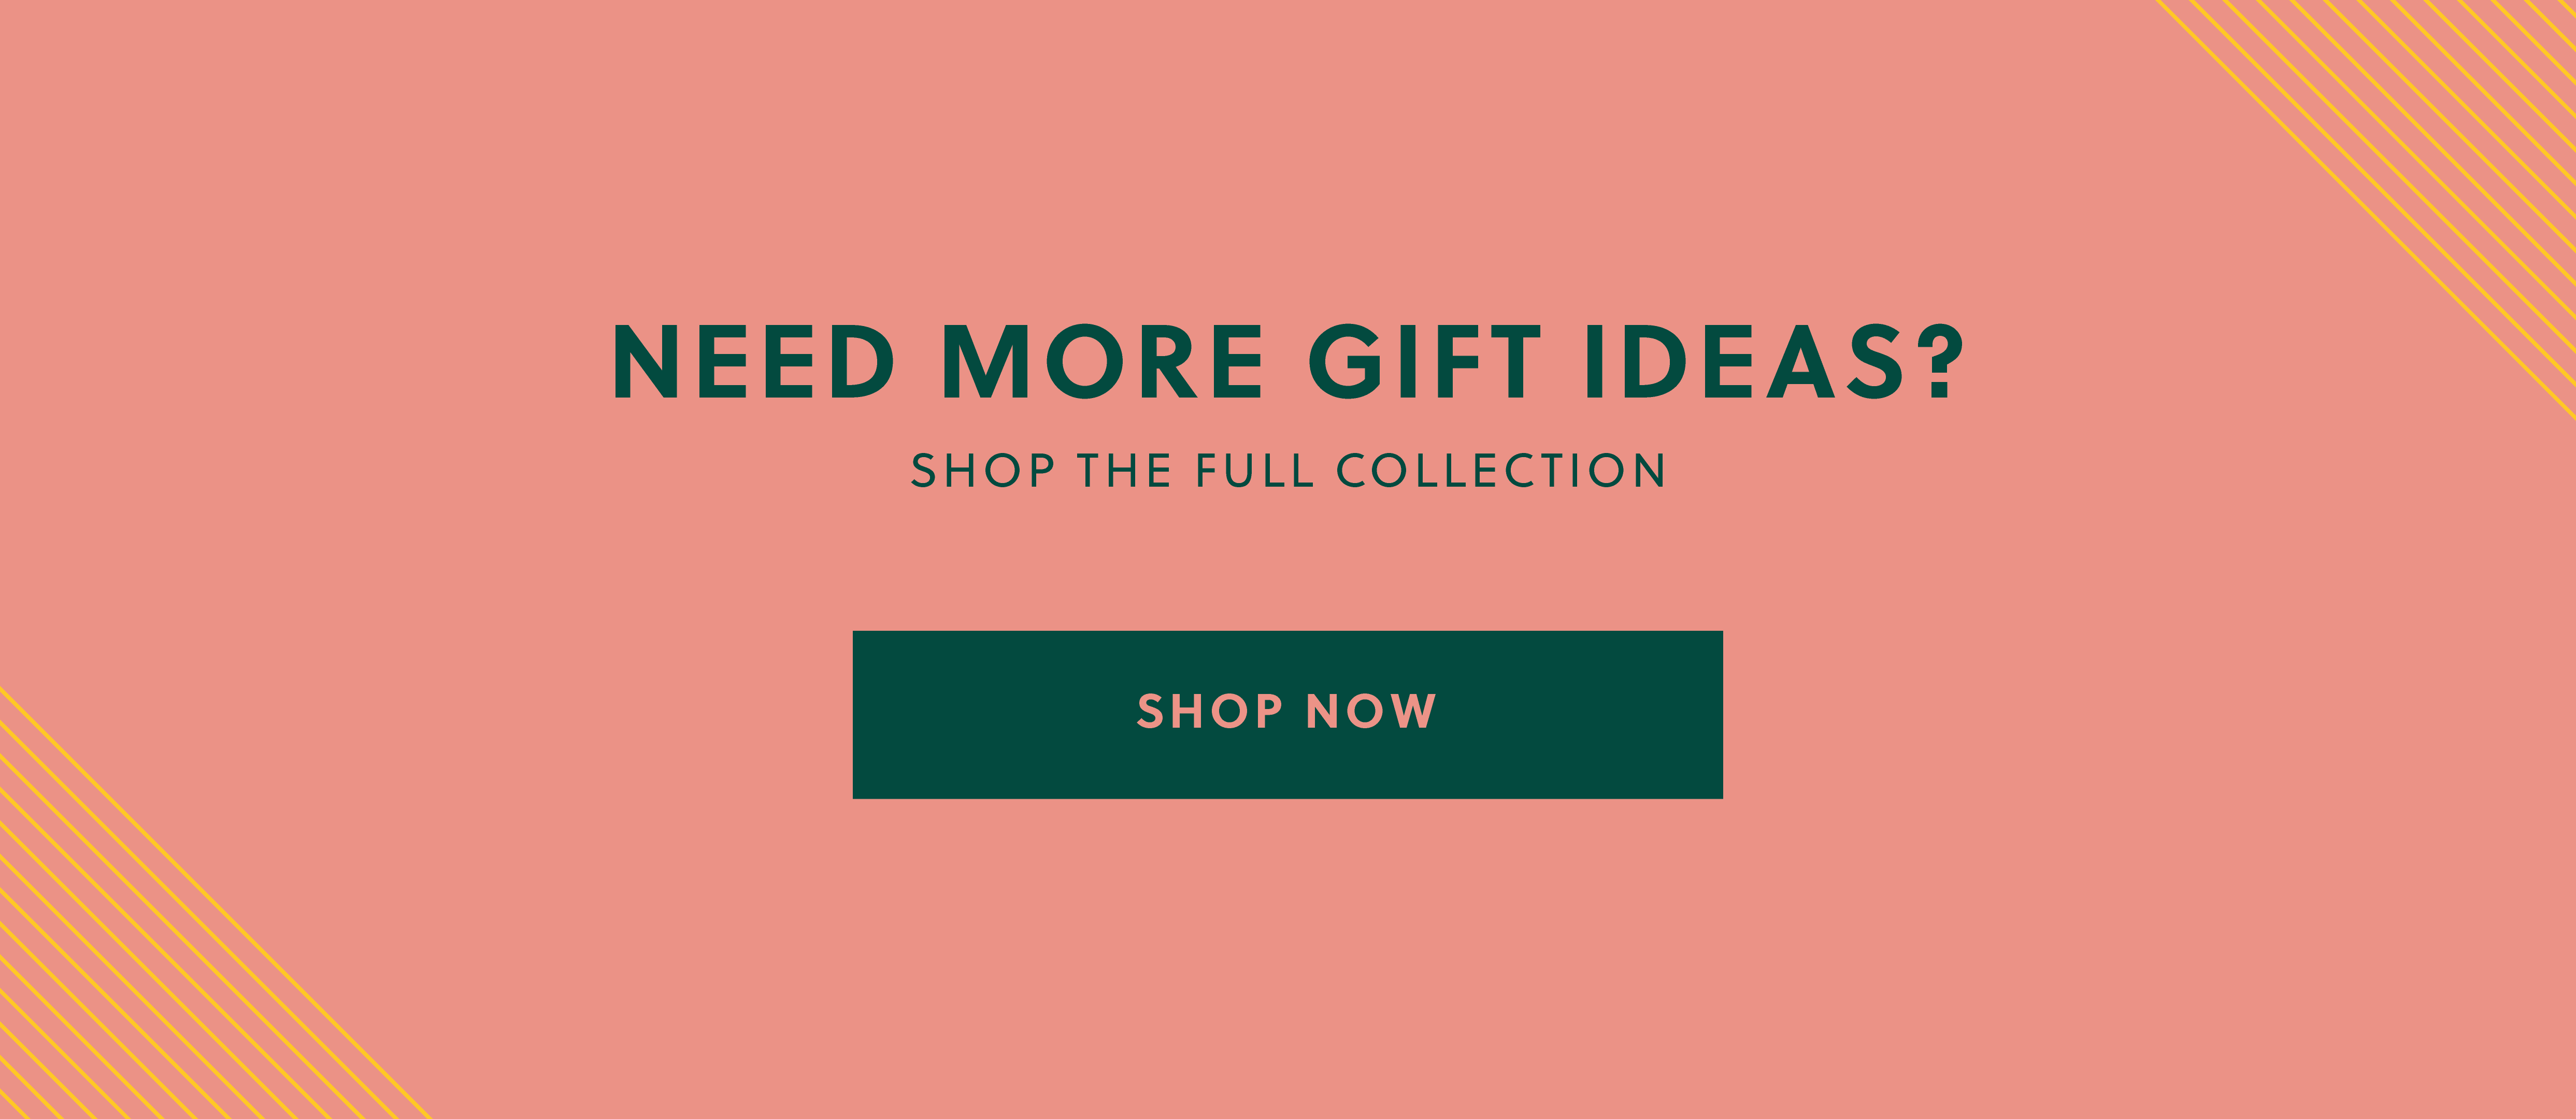 Need more gift ideas? Shop the full ME to WE collection for mother's day gifts that empower moms to provide the very best for their families.